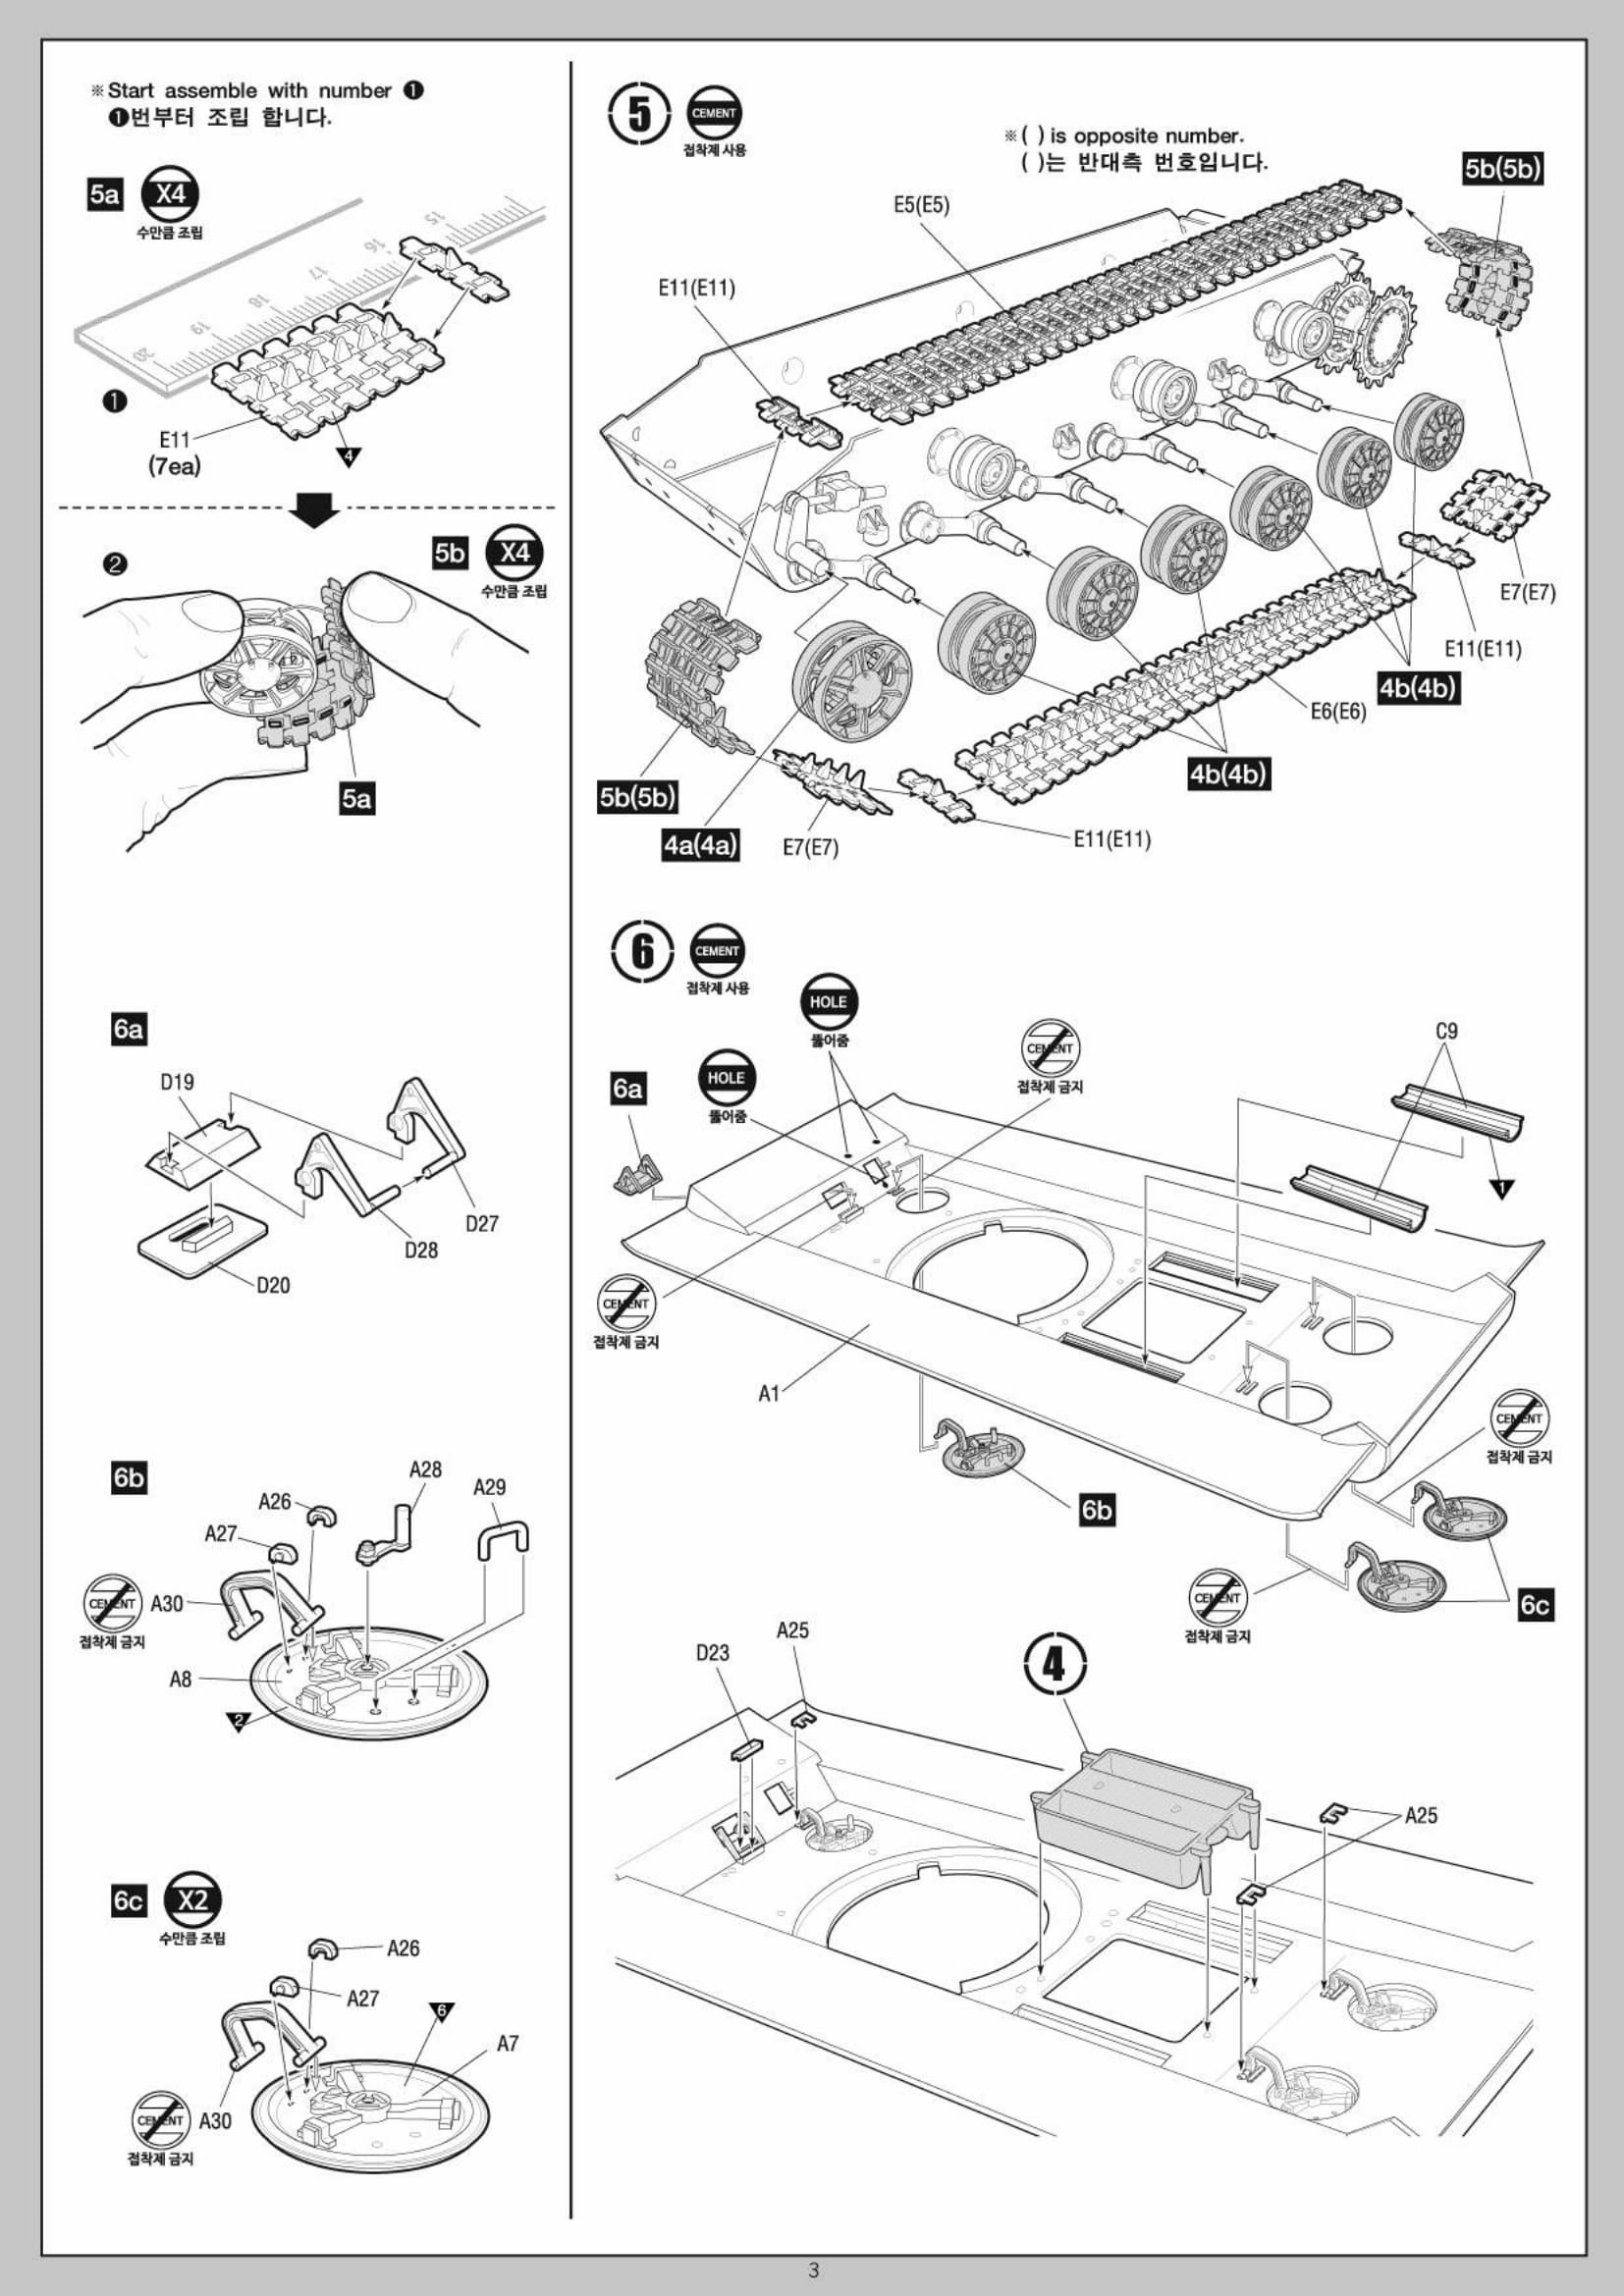 Body Wiring Diagram For 1955 Chevrolet Passenger Car Convertible Coupe 1067 Dtx Body Styles